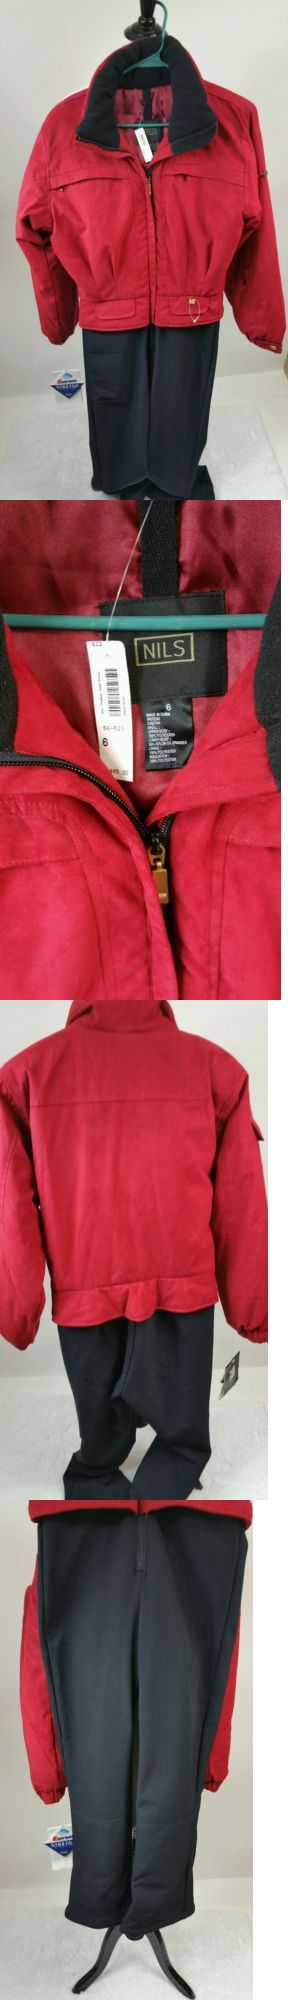 Snowsuits 62178: Nwt $485 Nils One Piece Full Body Ski Suit M 6 Paprika And Black Beautiful -> BUY IT NOW ONLY: $69 on eBay!